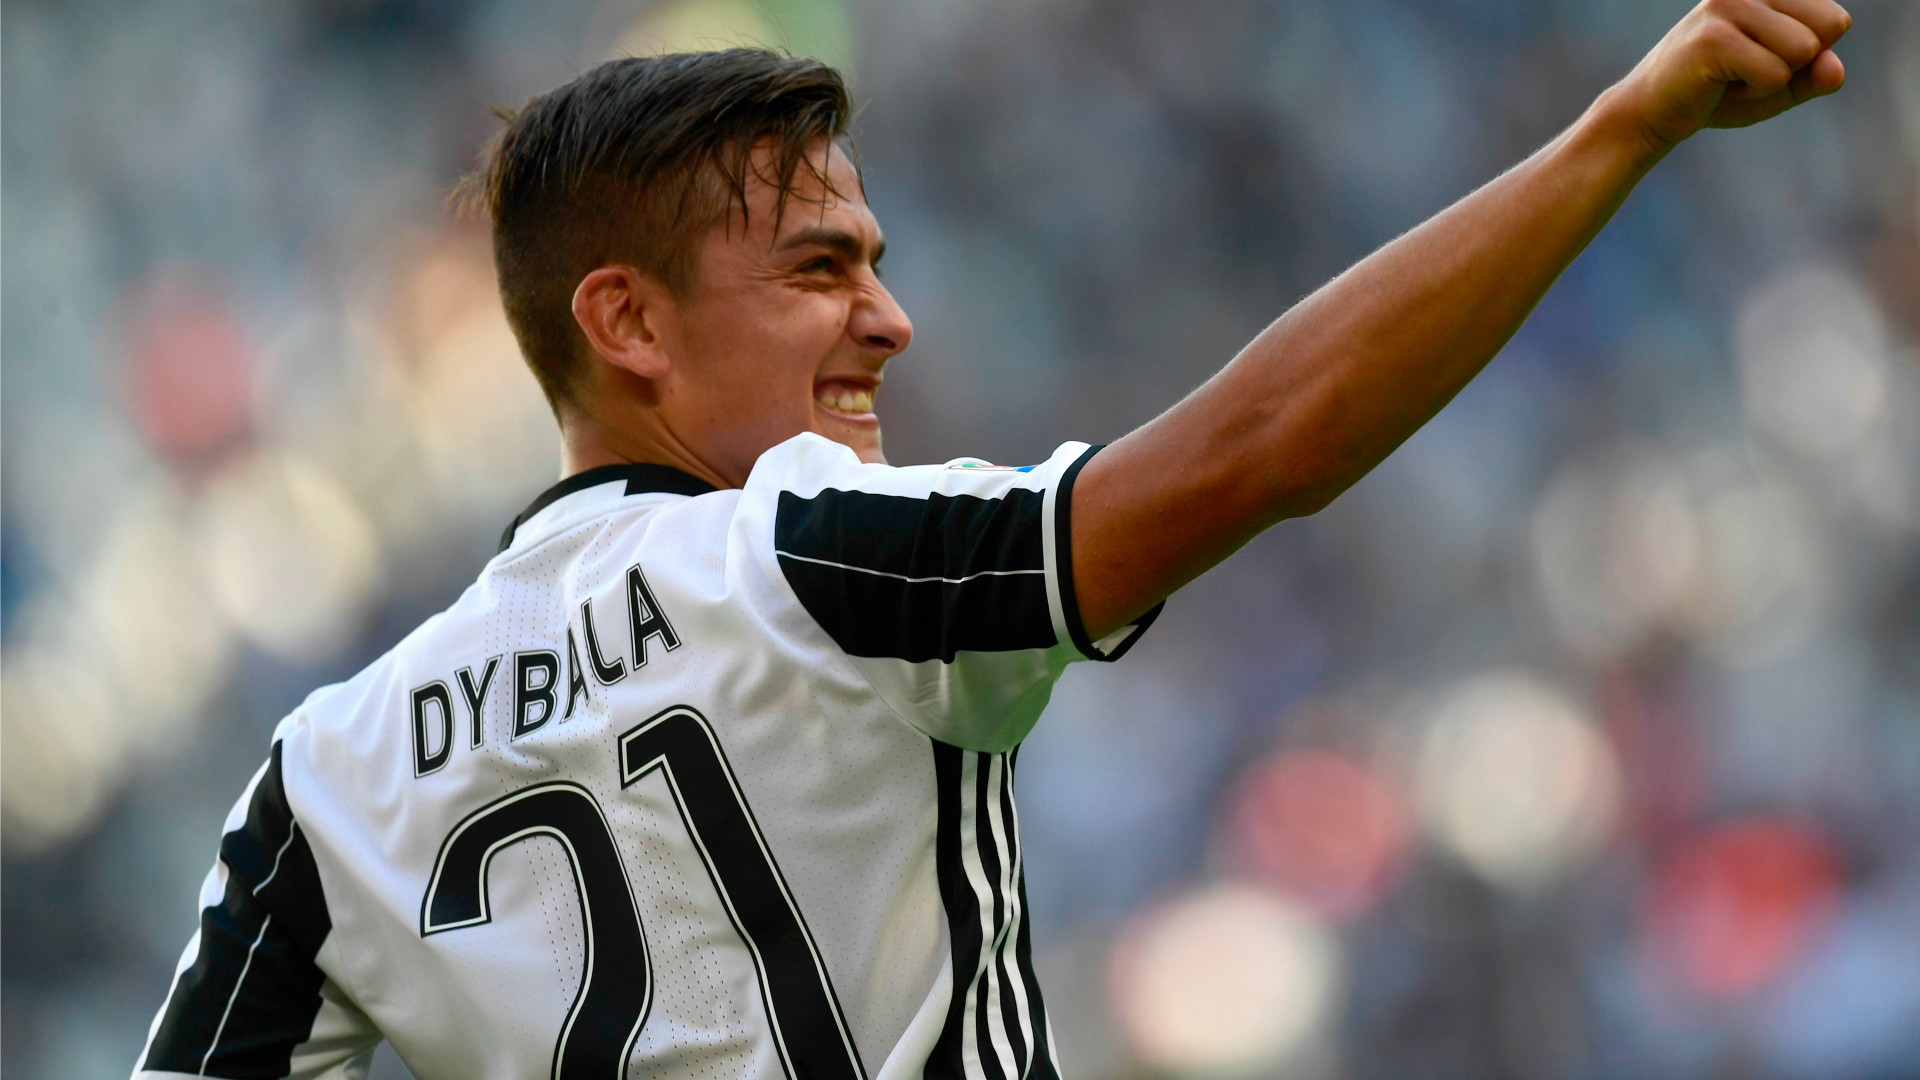 Dybala Wallpapers 72+ images